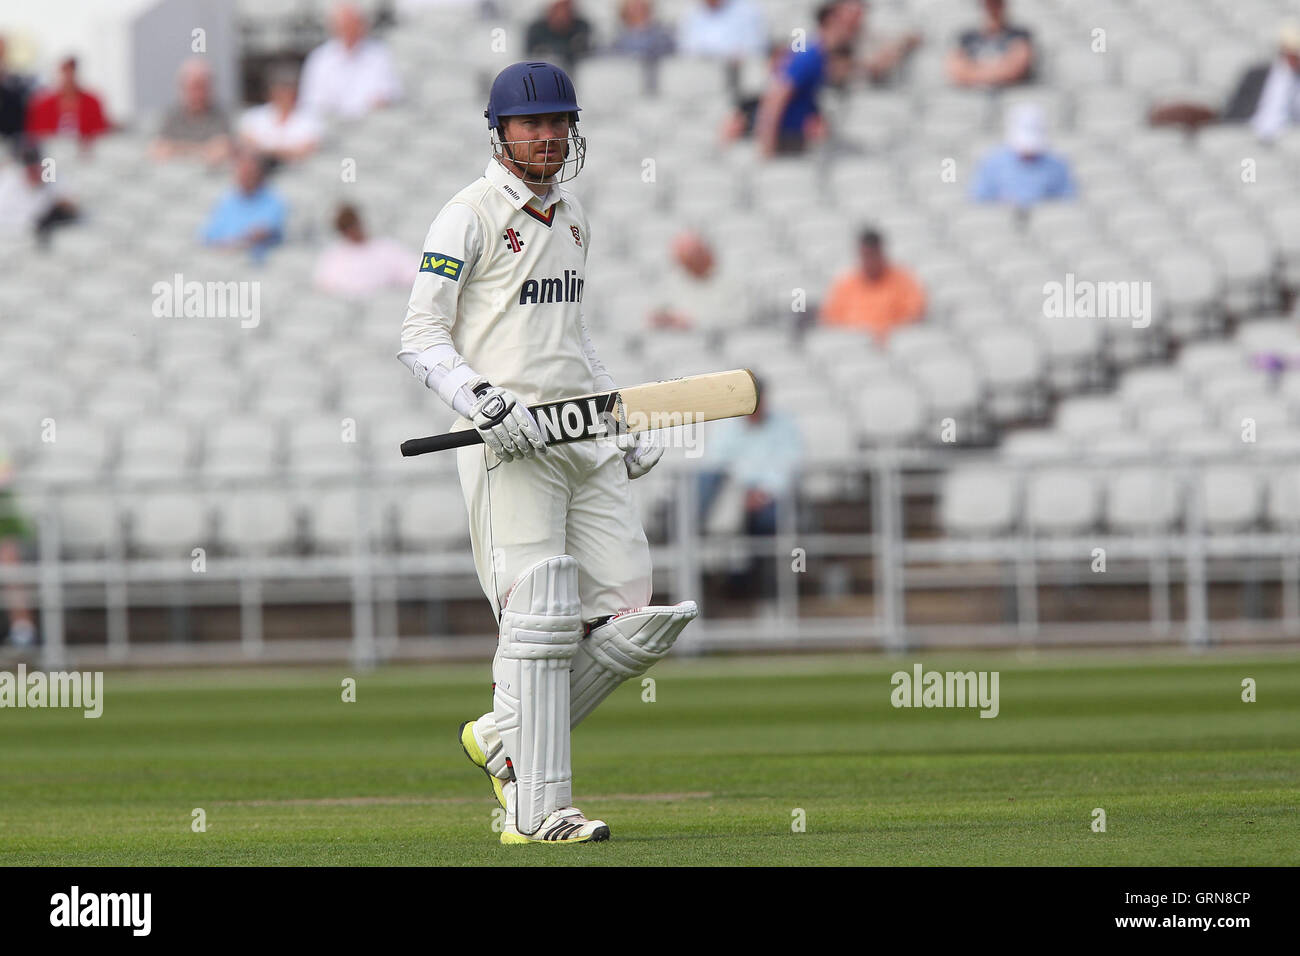 Tim Phillips trudges off having been dismissed by Stephen Parry - Lancashire CCC vs Essex CCC - LV County Championship - Stock Image